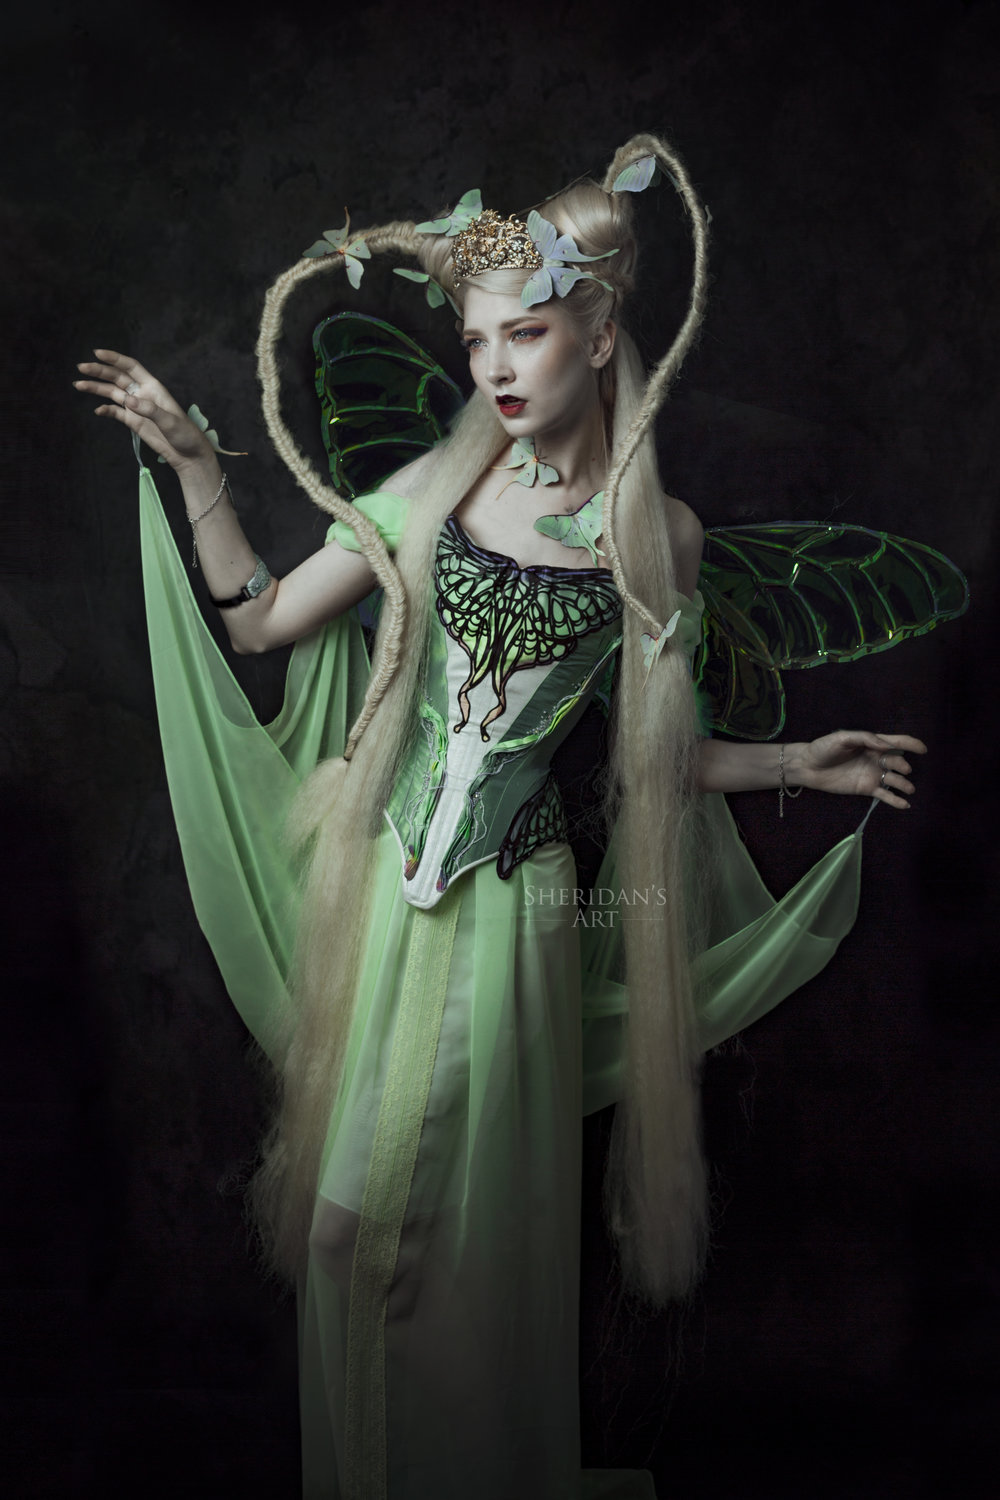 "From a massive collab I've done for my ""Moth Girl"" series: I shot the Lunar Moth corset before in a collab with Rainbow Curve Corsetry. I saved up a long time to buy it finally (in a payment plan of 2 payments though). The wings I've bought for a workshop & the designer HelloFaerie sponsored me a second set. It was her decision because she liked my work. I bought wings again. She made some for this project. Her decision too. Collaborations are a win-win and I'm not afraid to buy a piece if I think it will be great for my wardrobe. I'm a business after all; so that means I need to make investments too. It's all about balancing and respecting the boundaries of your fellow creatives."